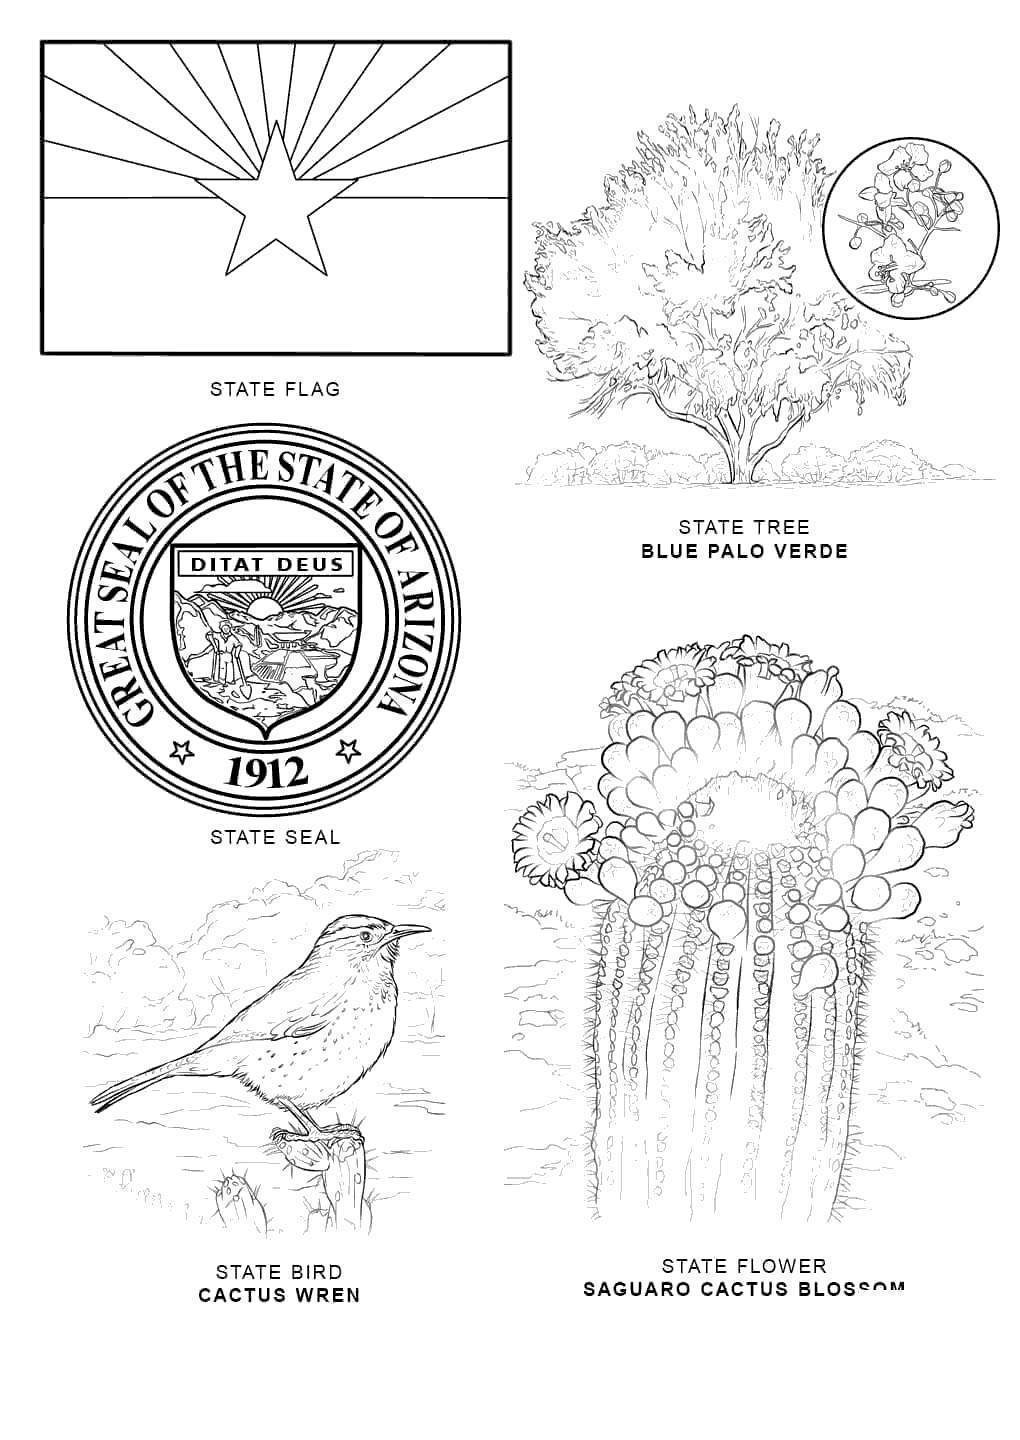 florida seal coloring pages - photo#22